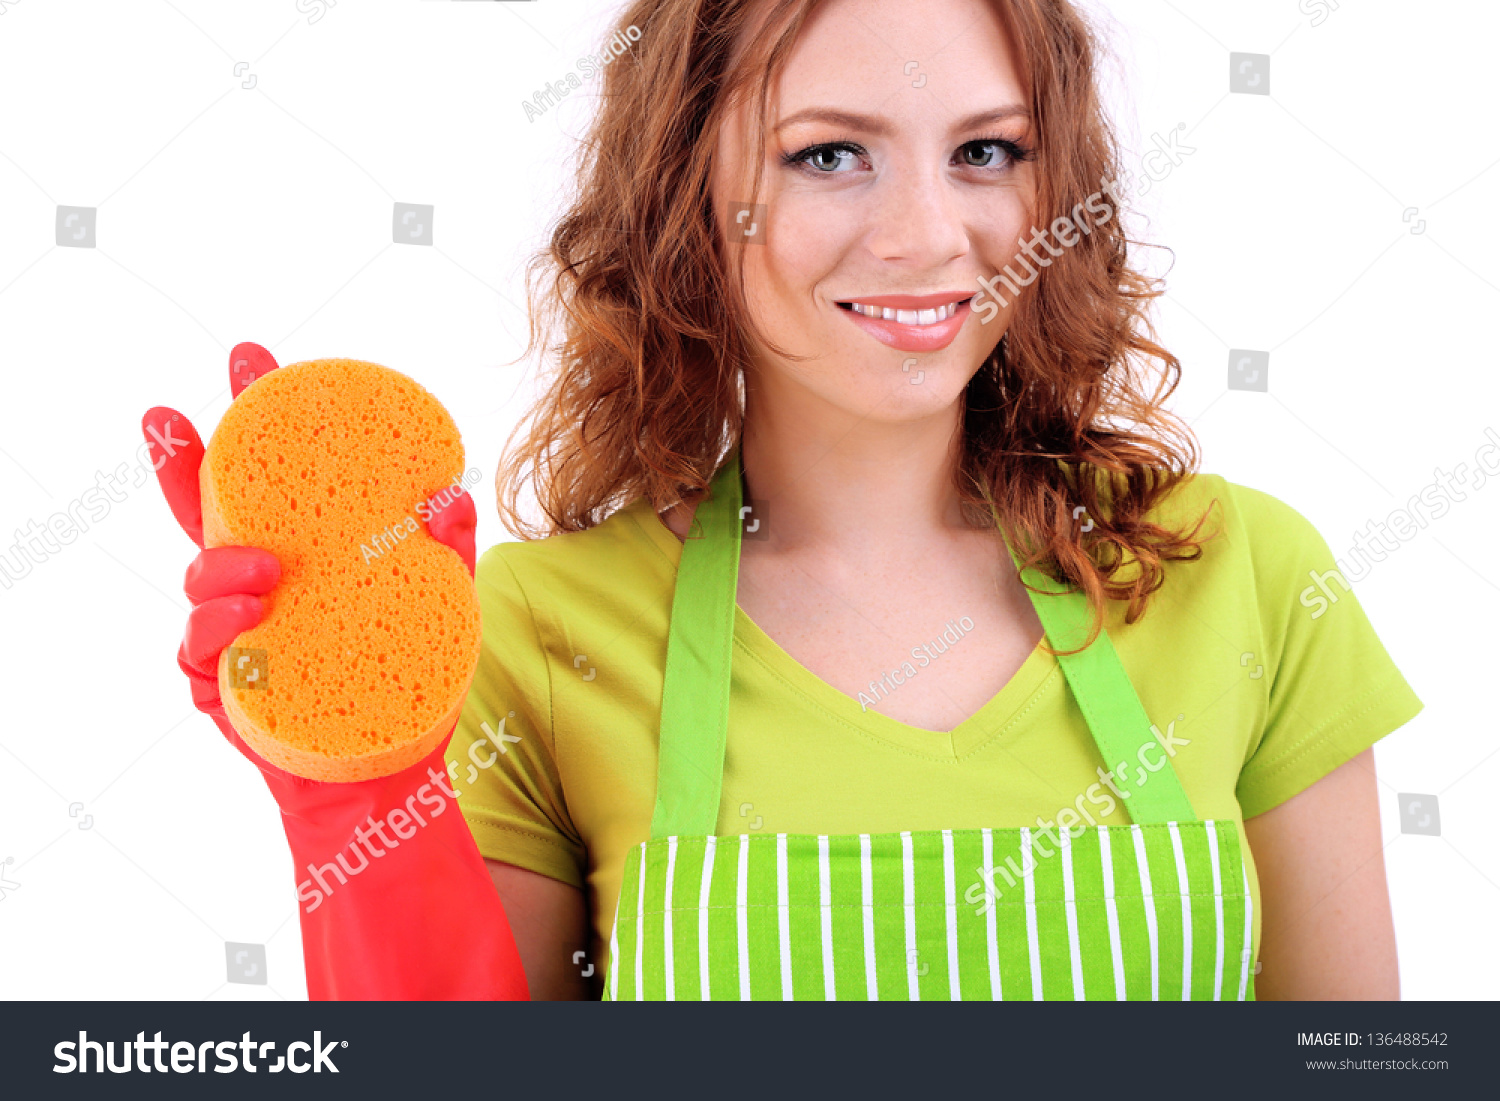 White rubber apron - Young Woman Wearing Green Apron And Rubber Gloves With Sponge Isolated On White